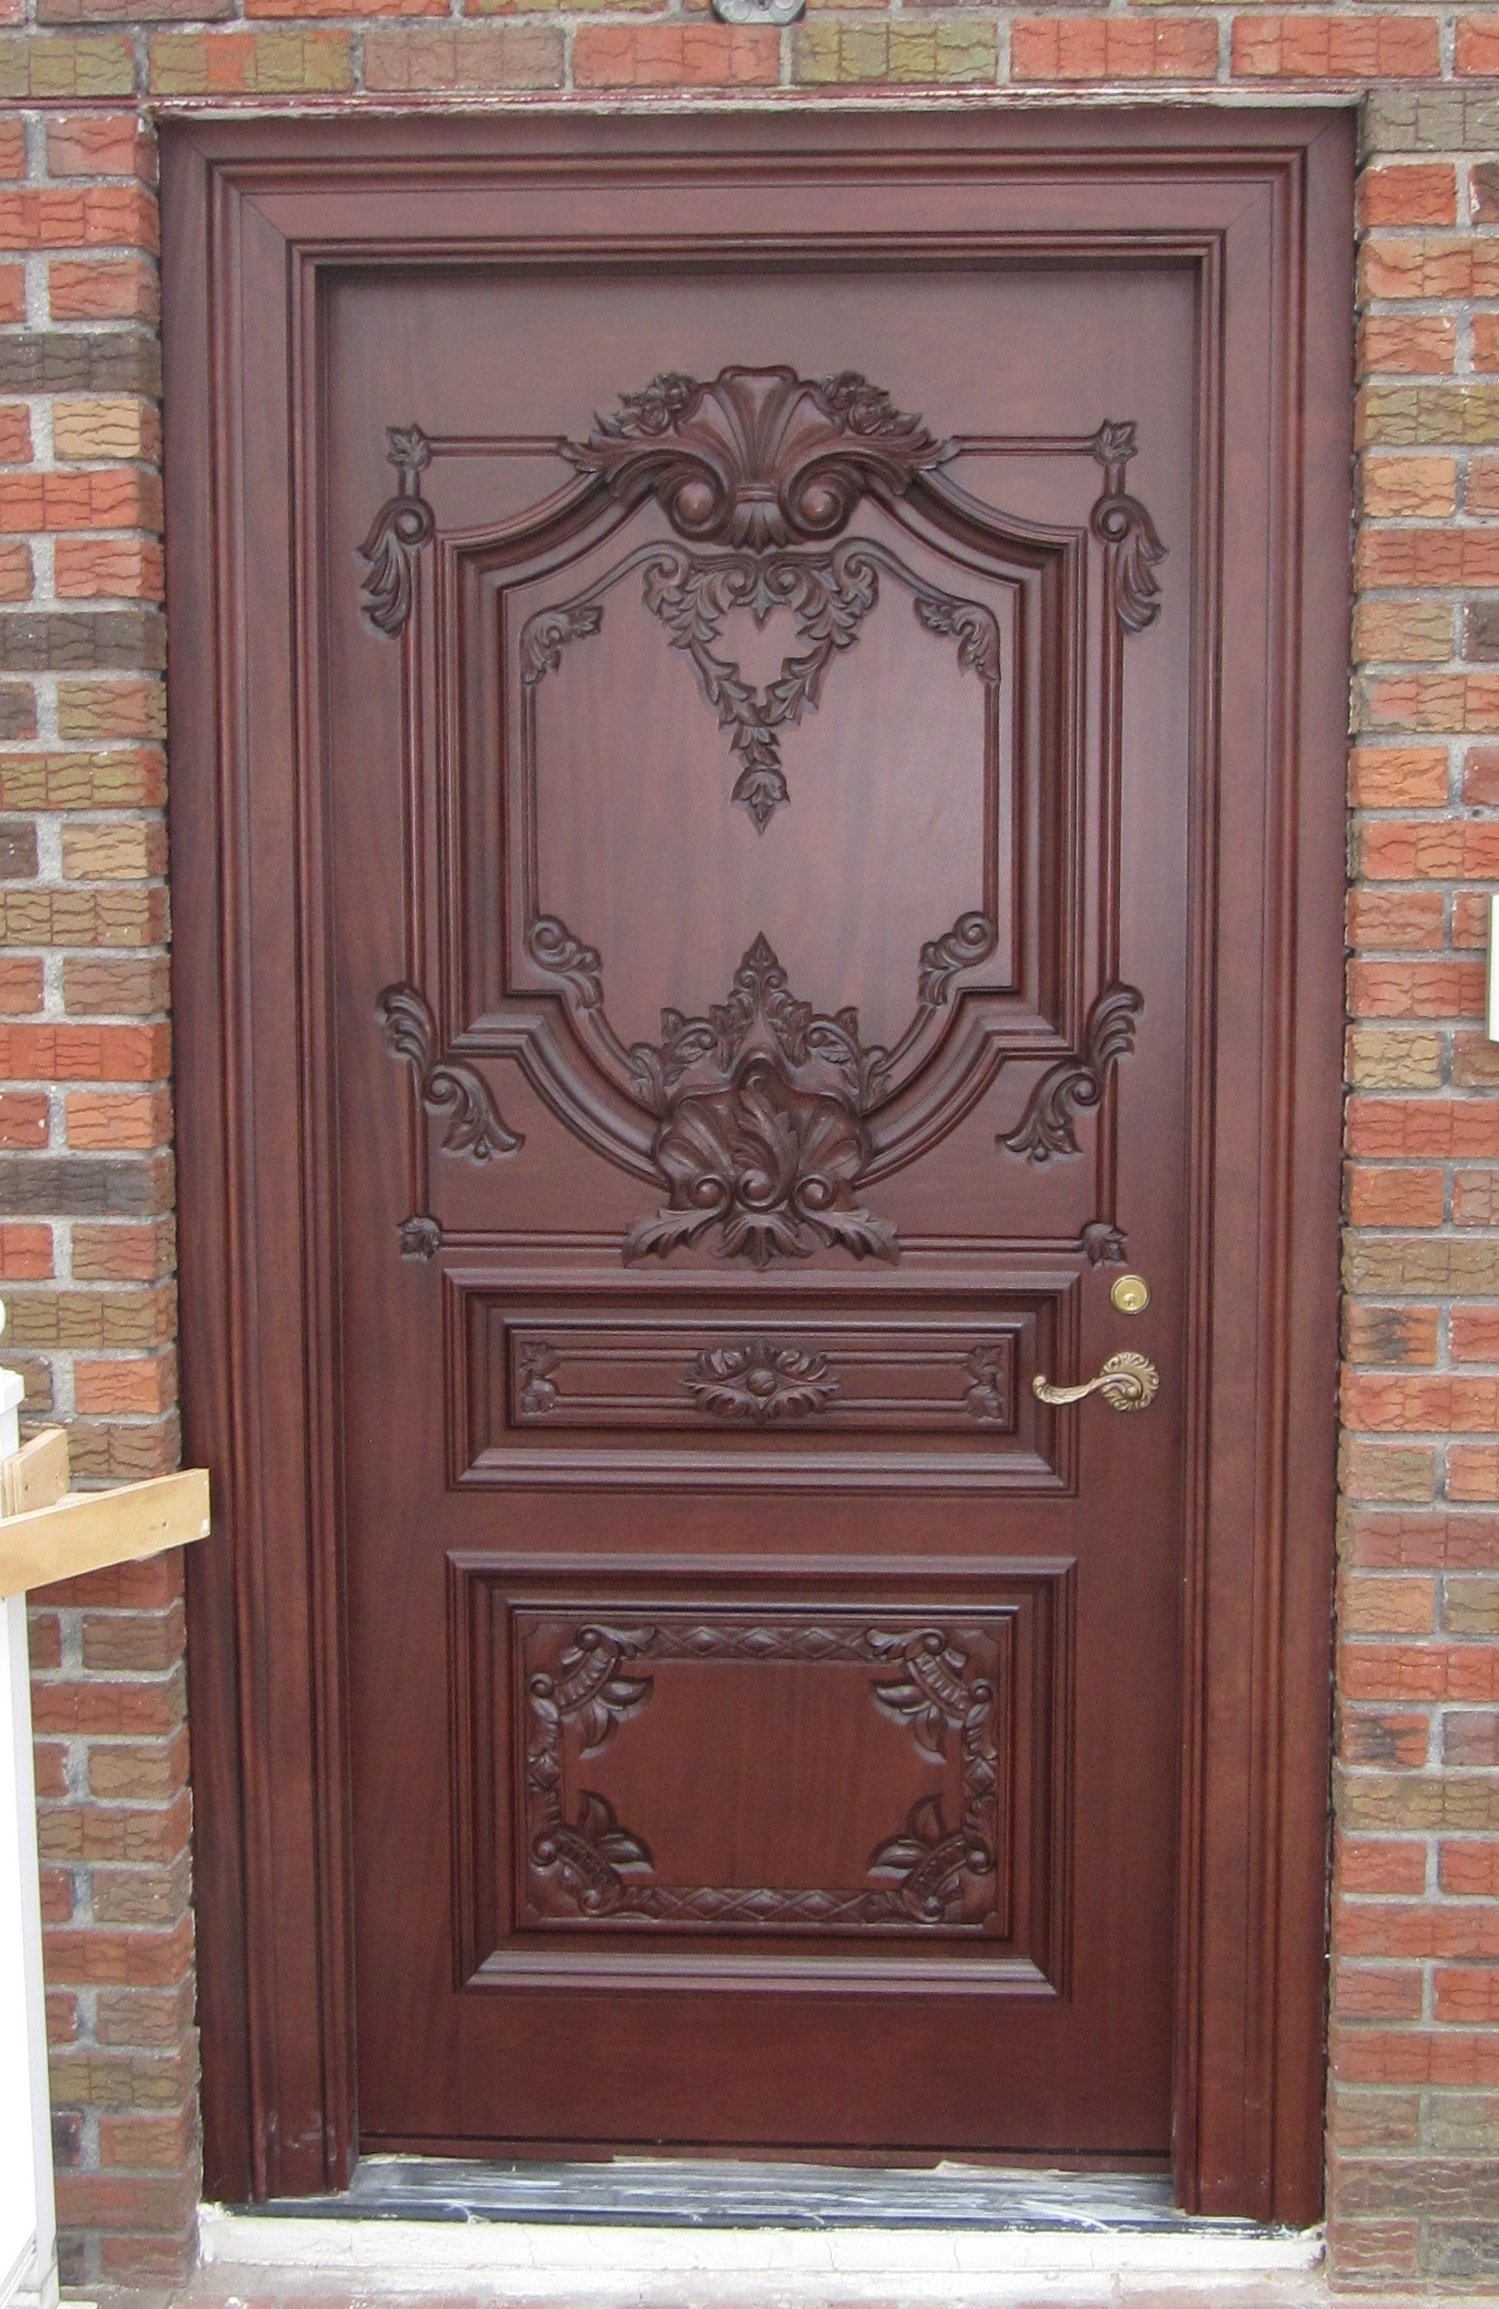 Grand doors makes grand entrance in new york new jersey and connecticut now got grander with - Design on wooden ...